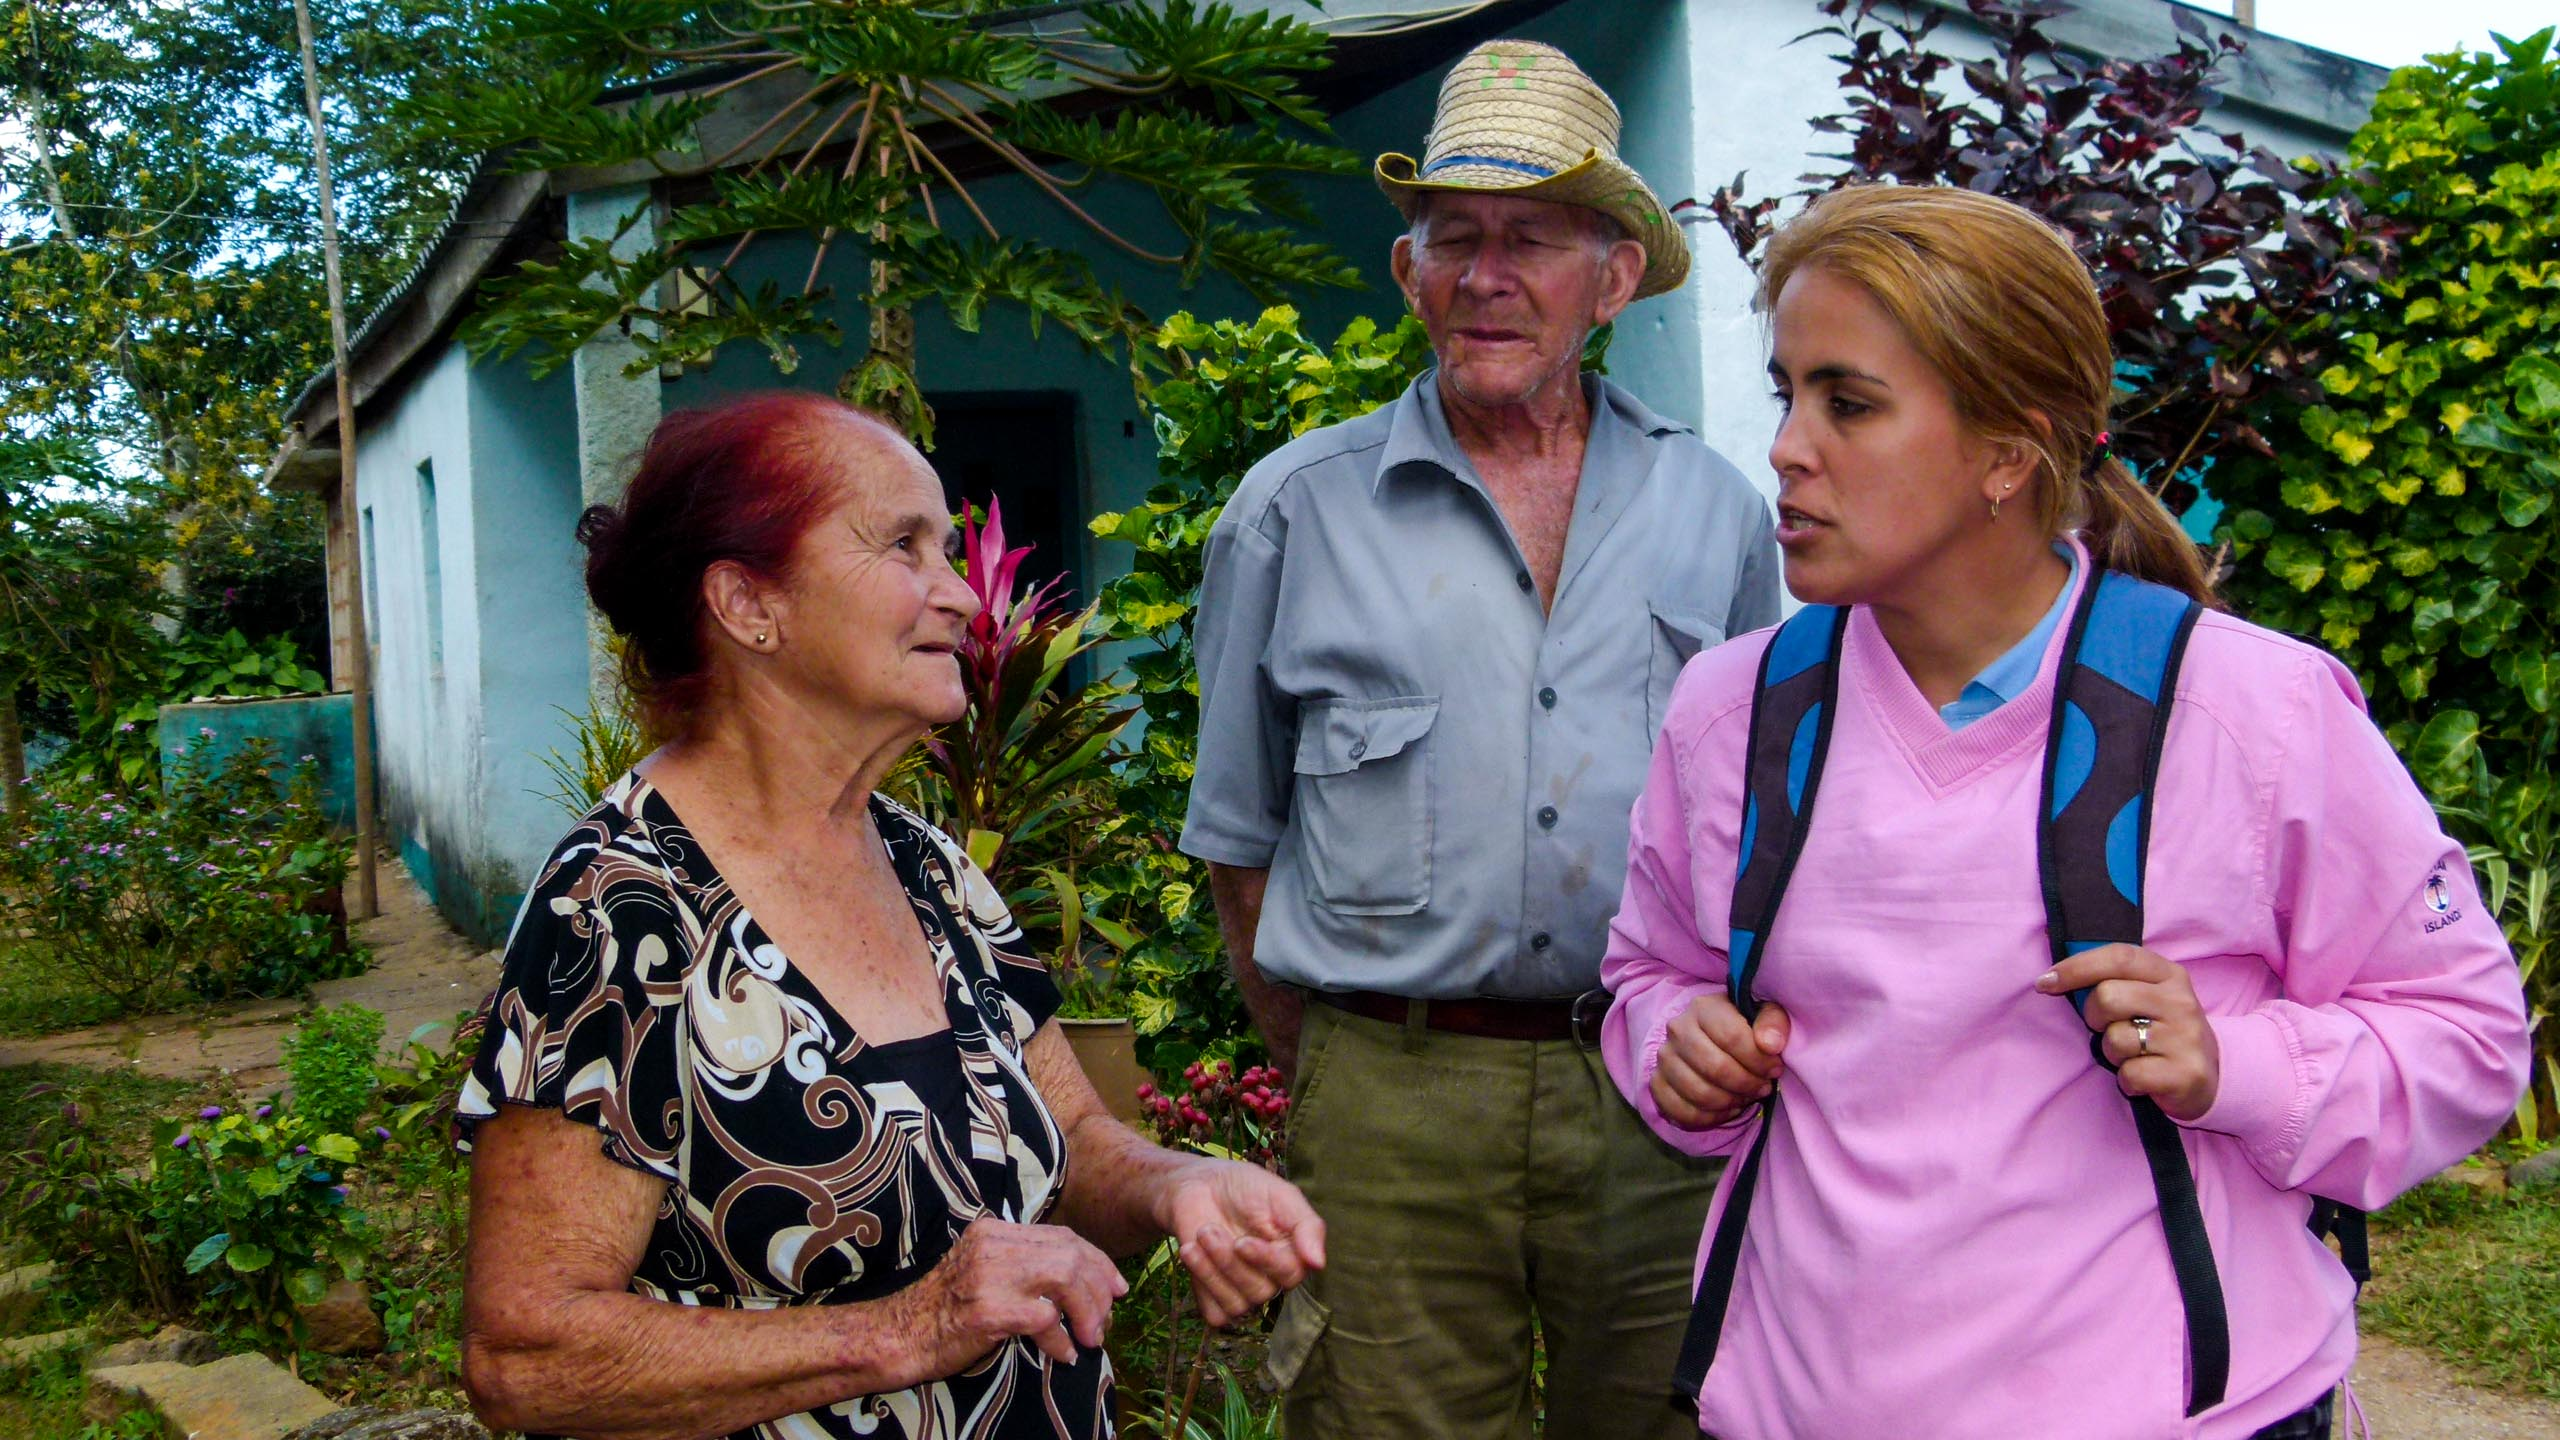 Traveler speaks with Cuba citizens